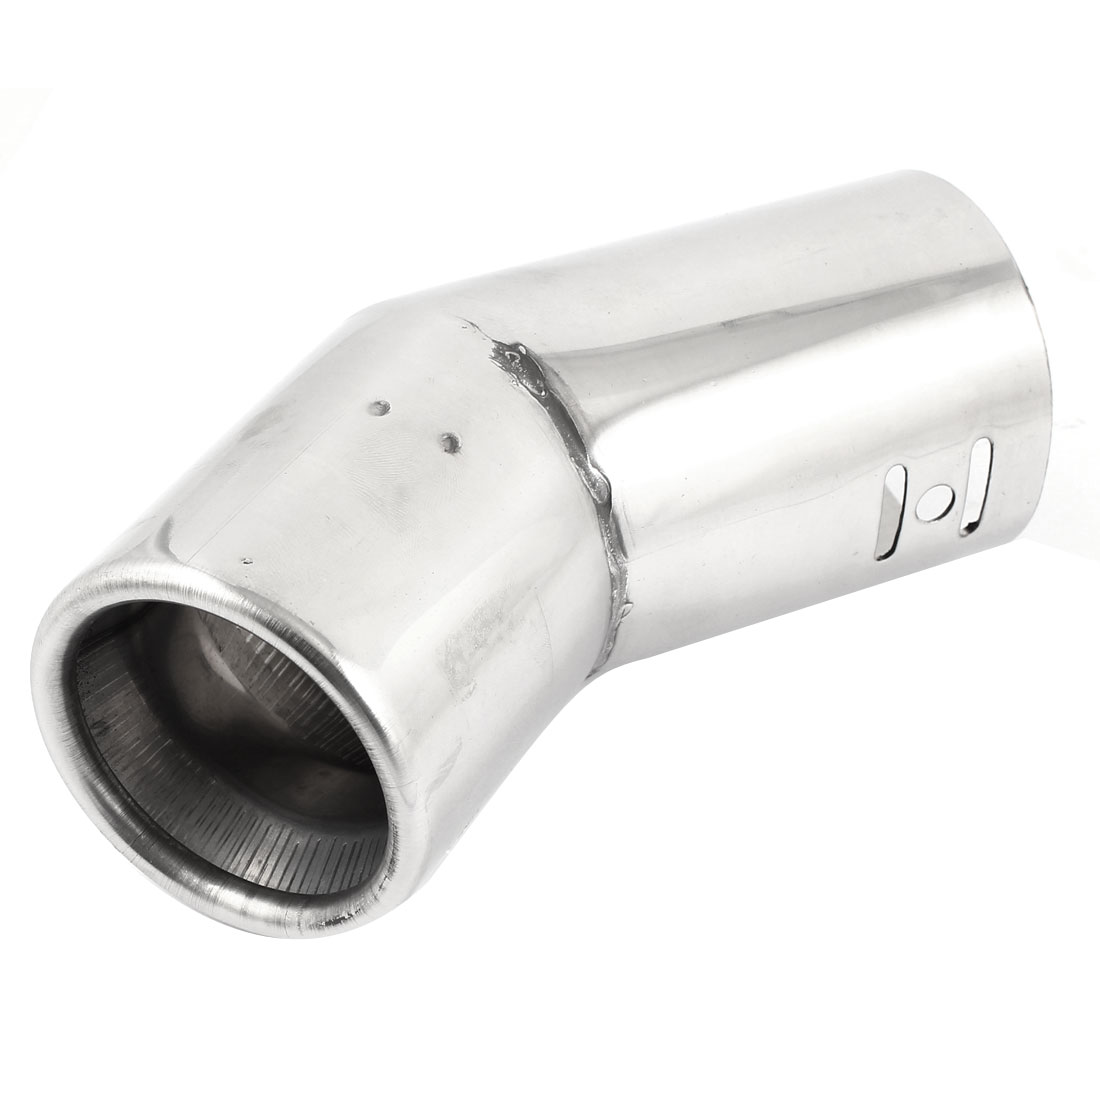 Auto Car Rolled Edge Curving Design 60mm Inlet Metal Muffler Tail Tip